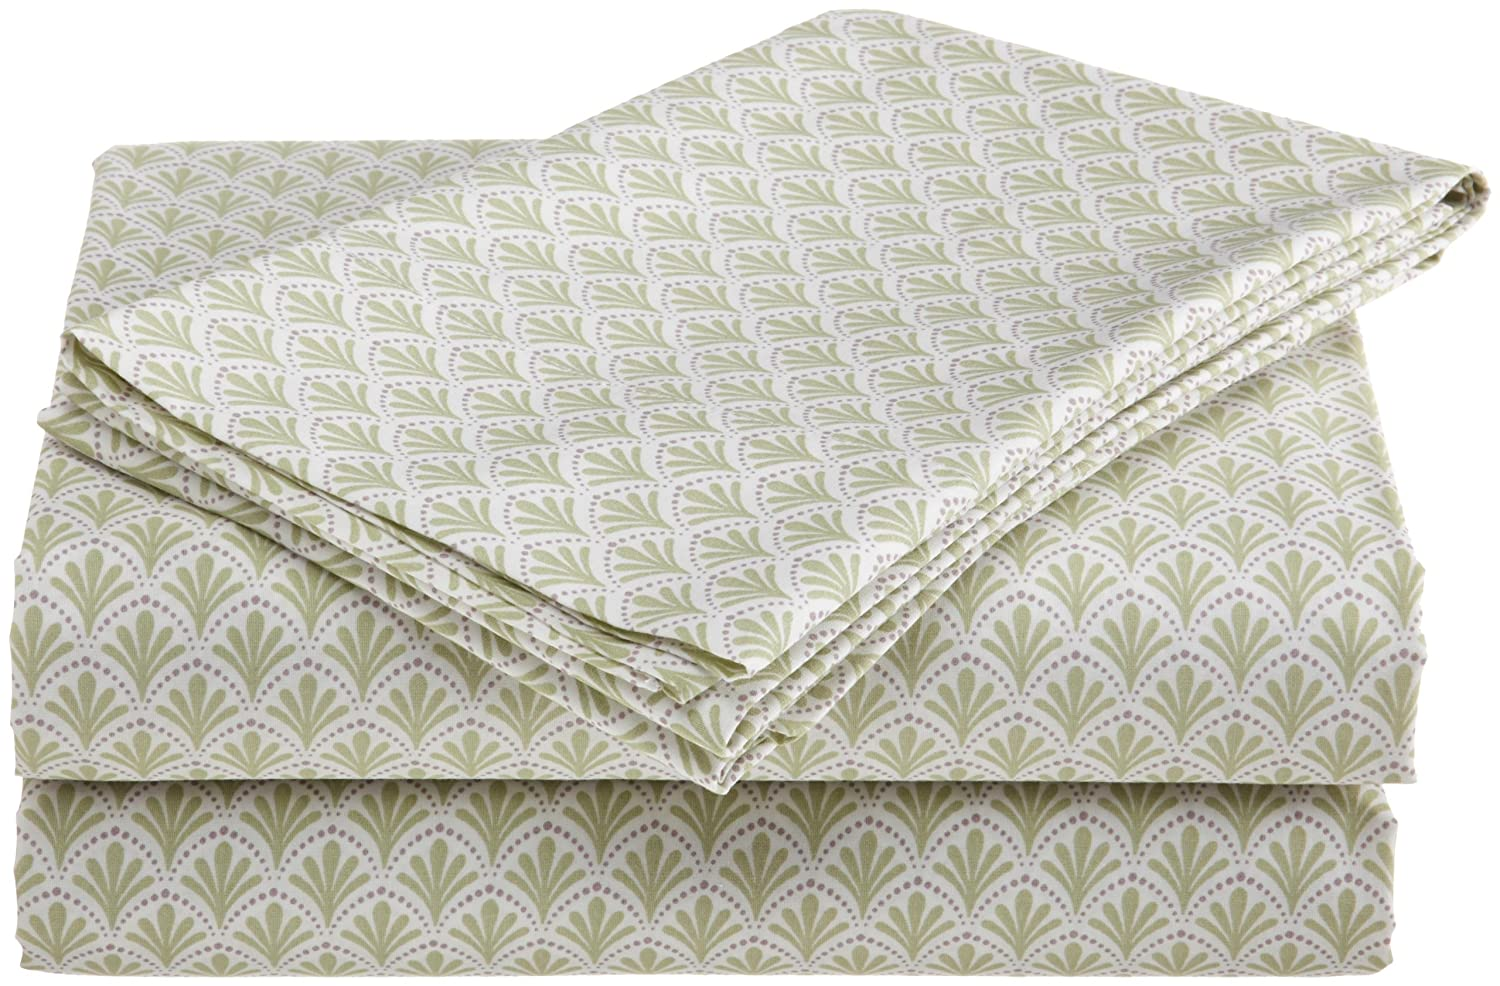 Laura ashley duvet covers king-6527